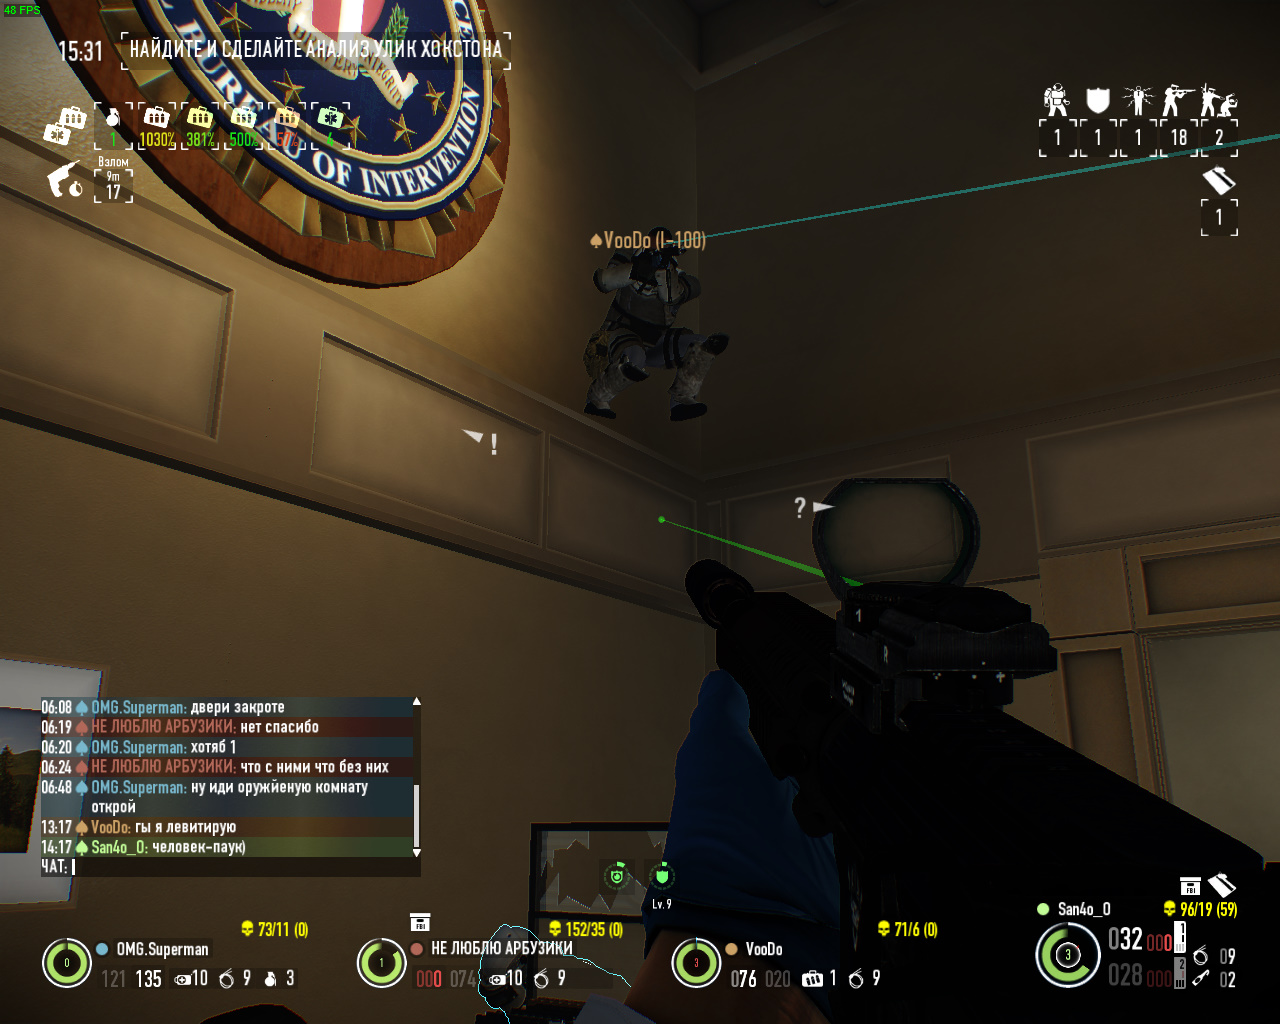 payday2_win32_release 2016-08-18 21-55-35-280.jpg - Payday 2